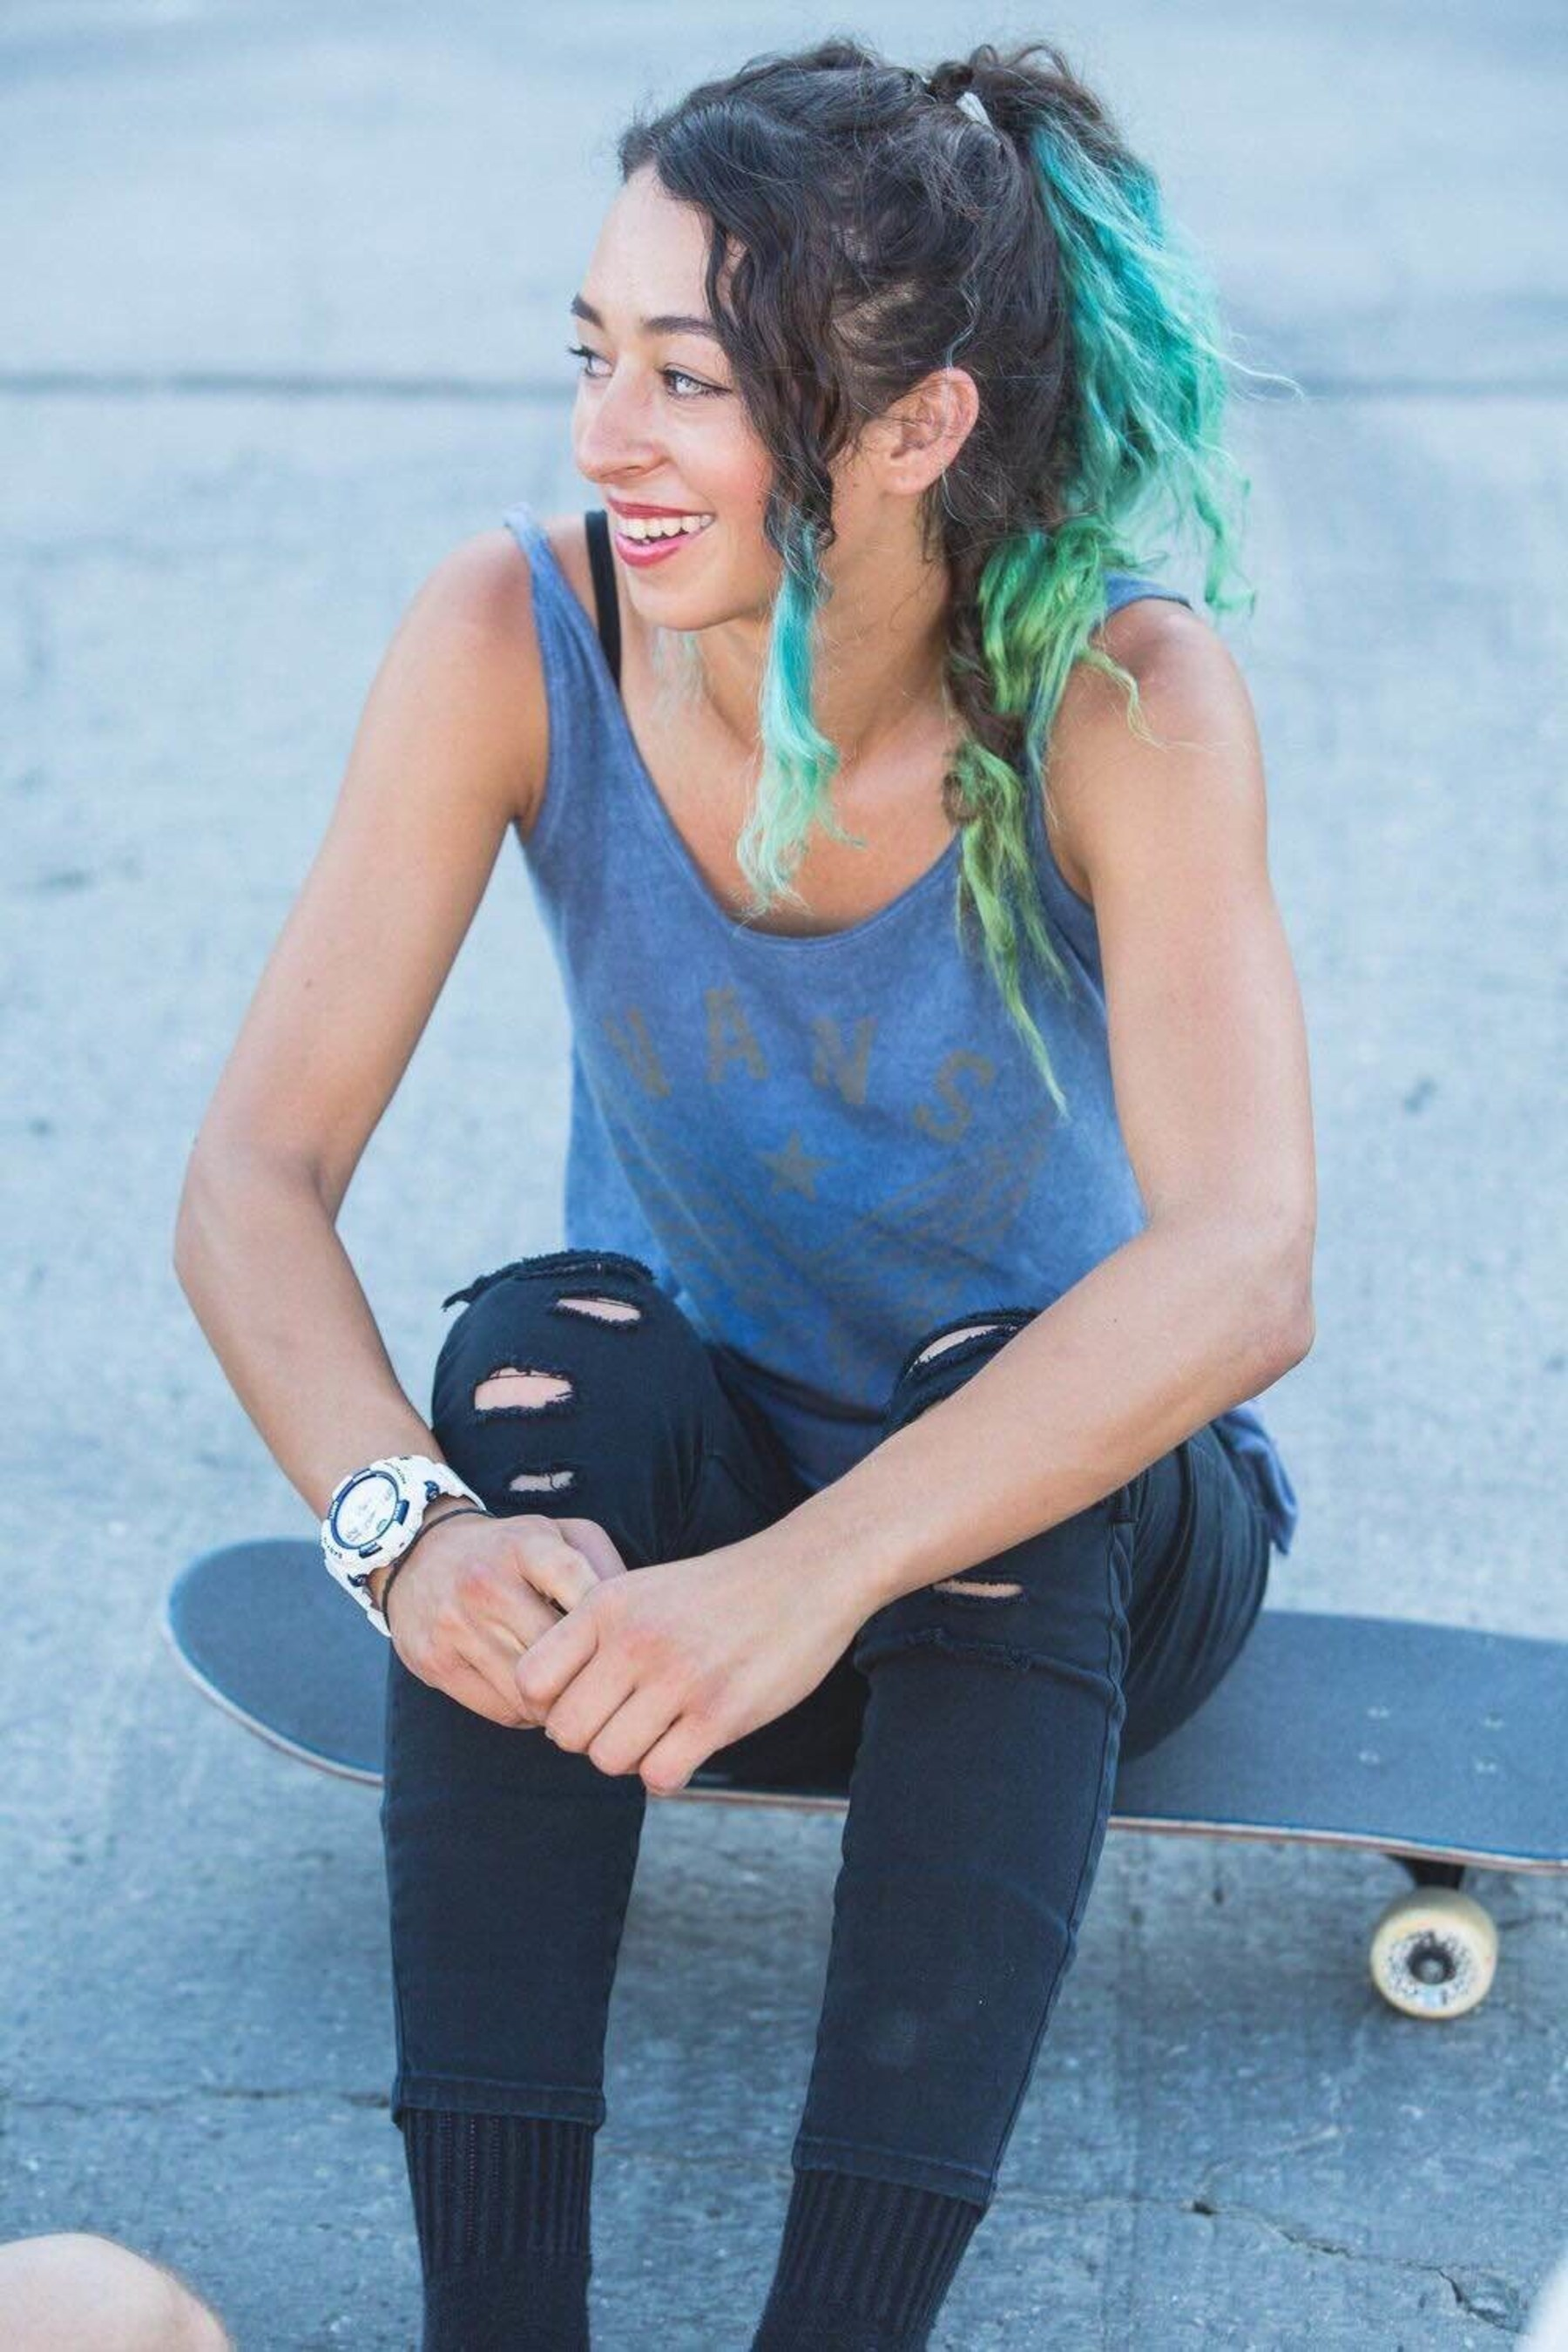 Casio BABY-G Announces Partnership With Skateboarder Lizzie Armanto